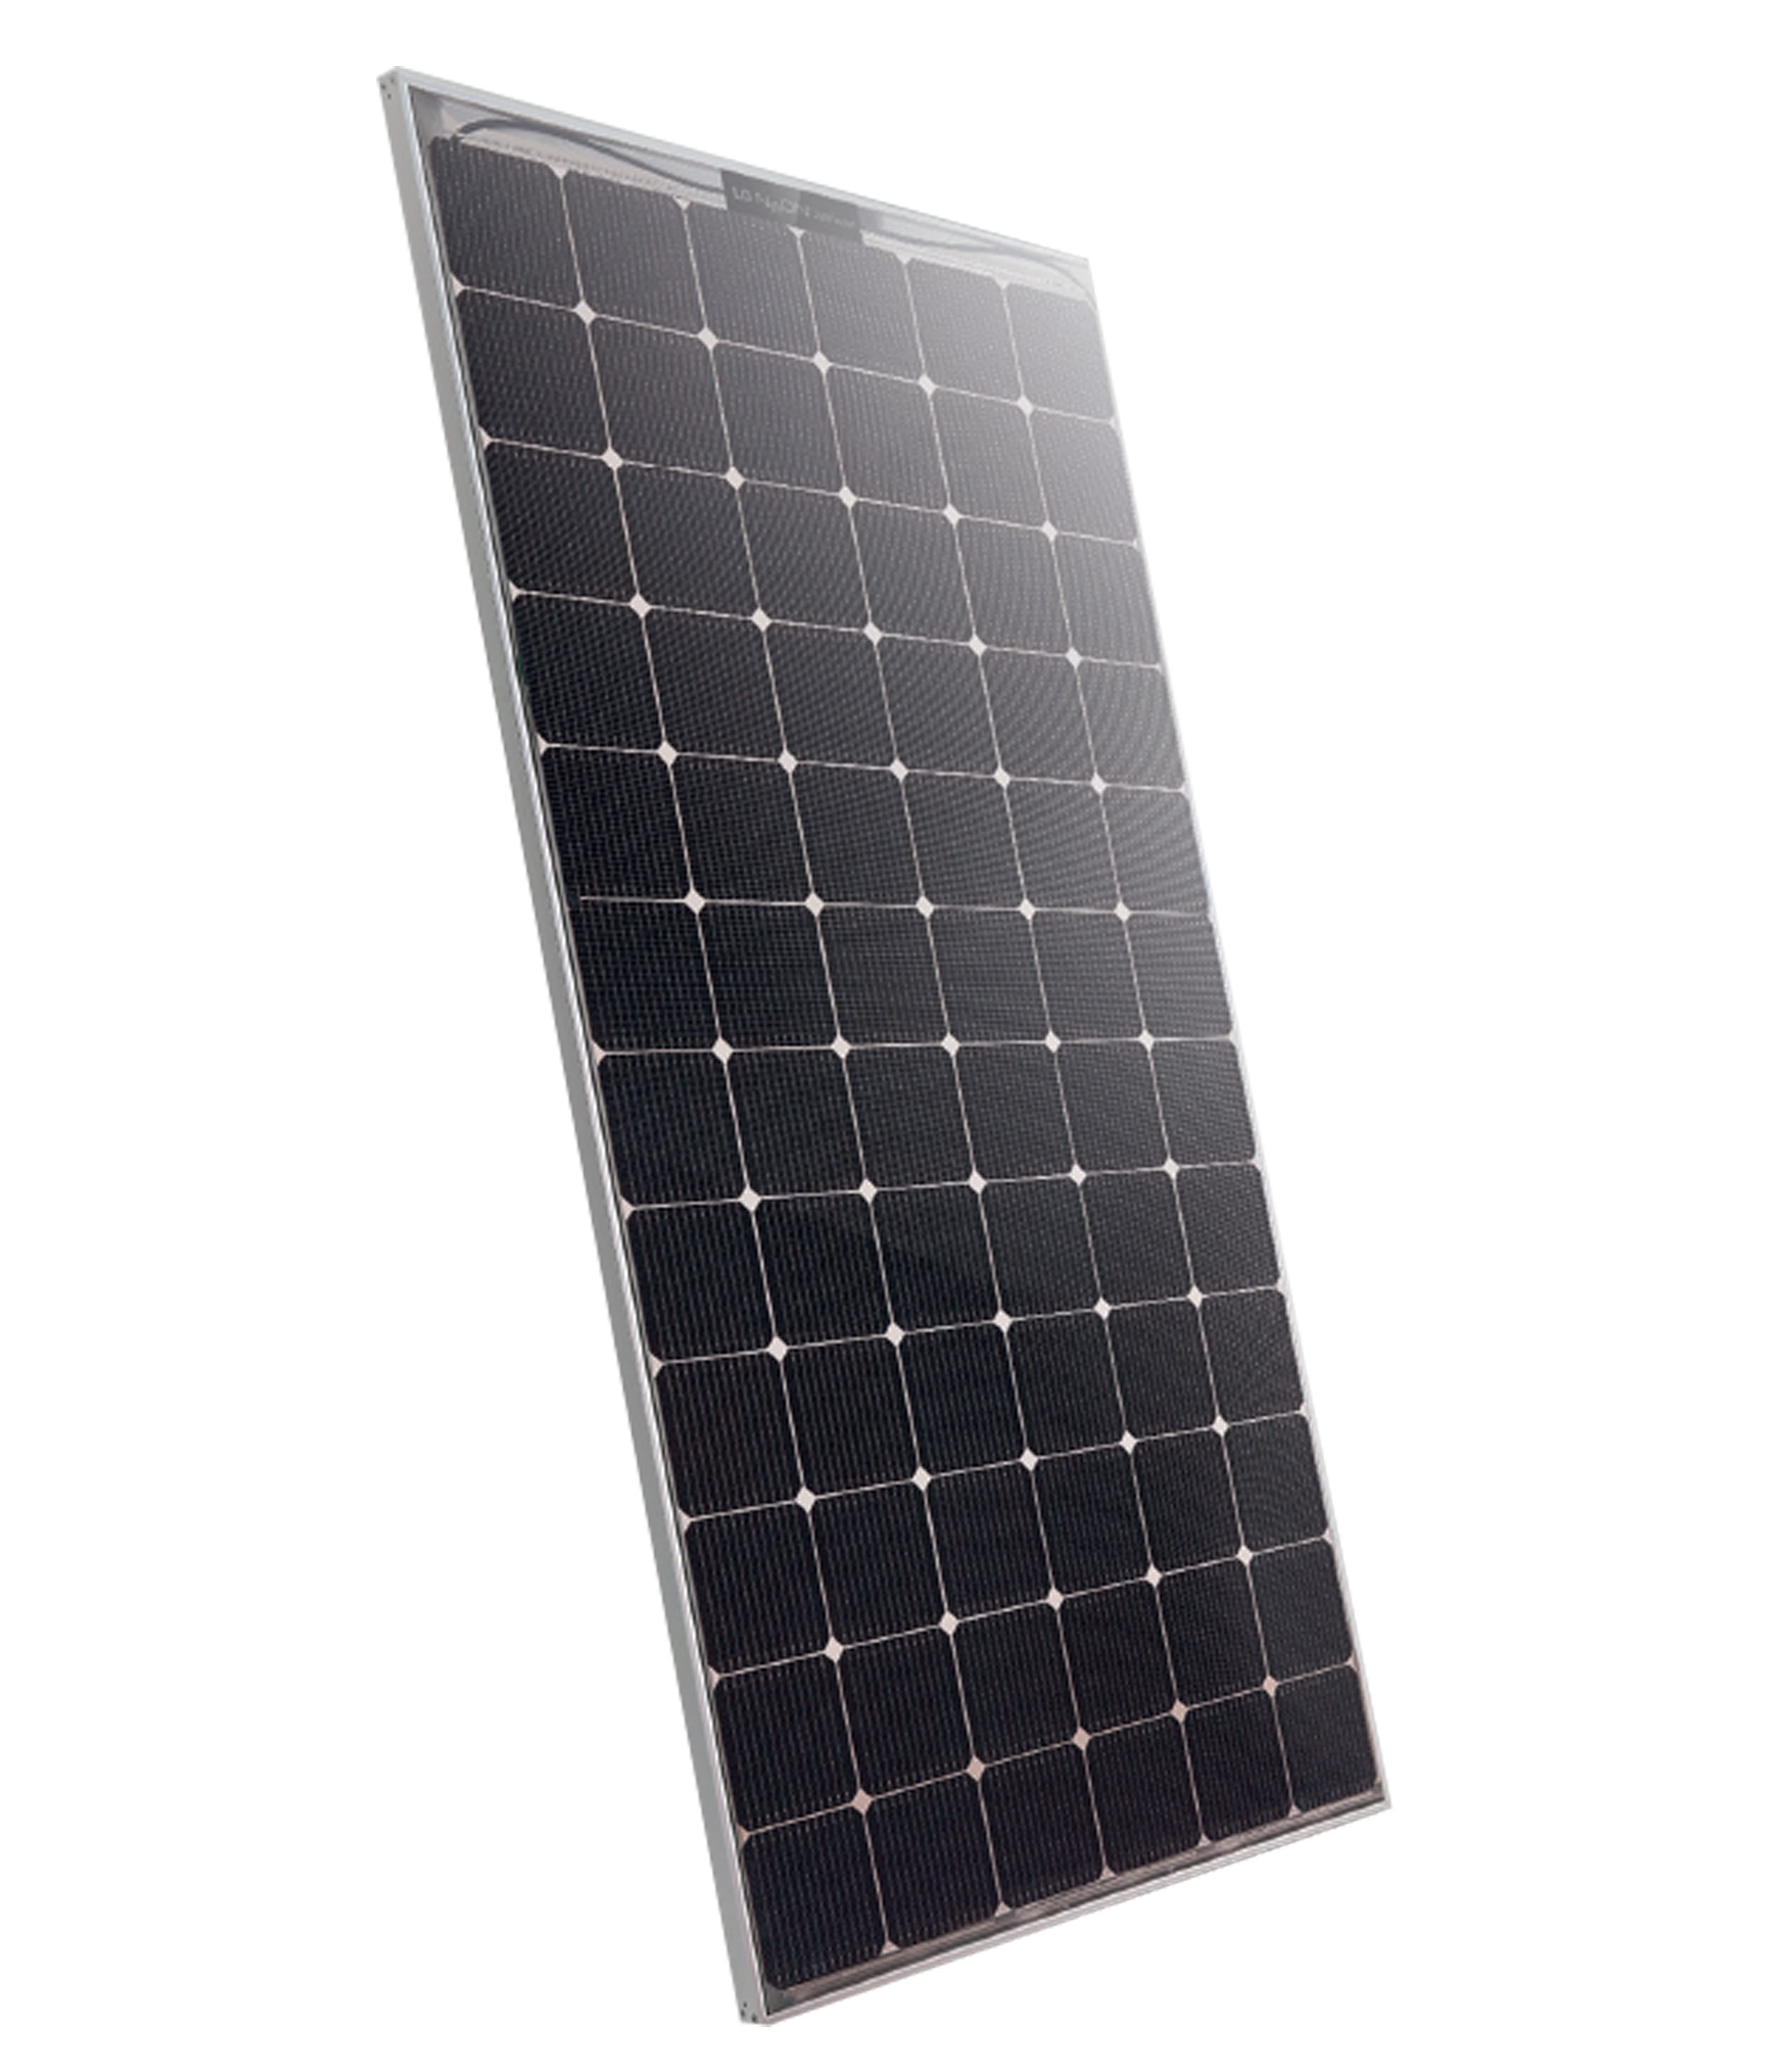 Photovoltaic panel LG LG400N2T-A5 400W - KOTLY COM